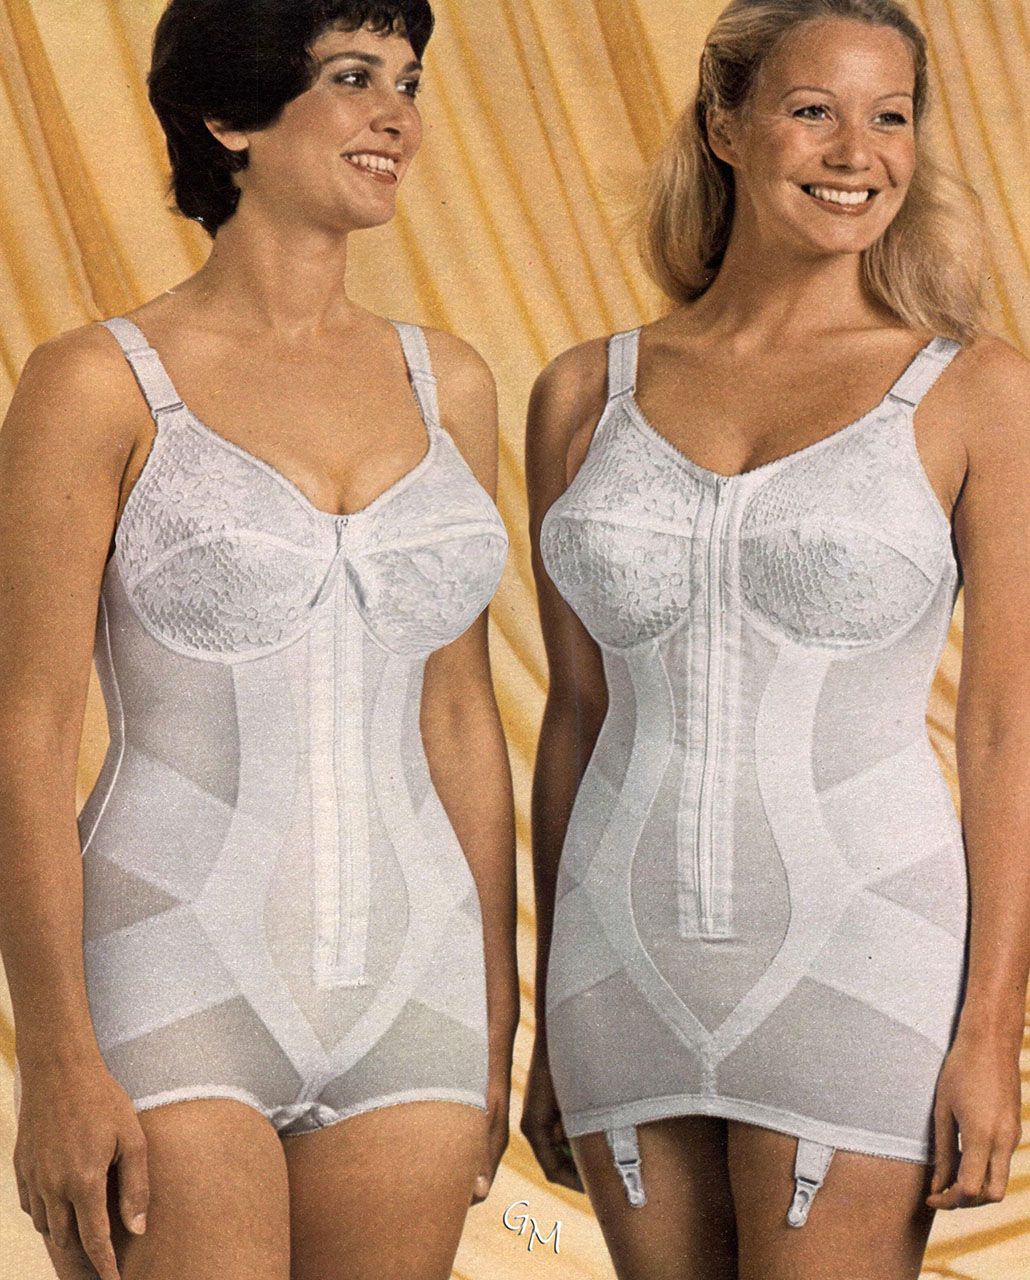 fd7bc234a36 All-in-one panty and open girdle Classic Lingerie